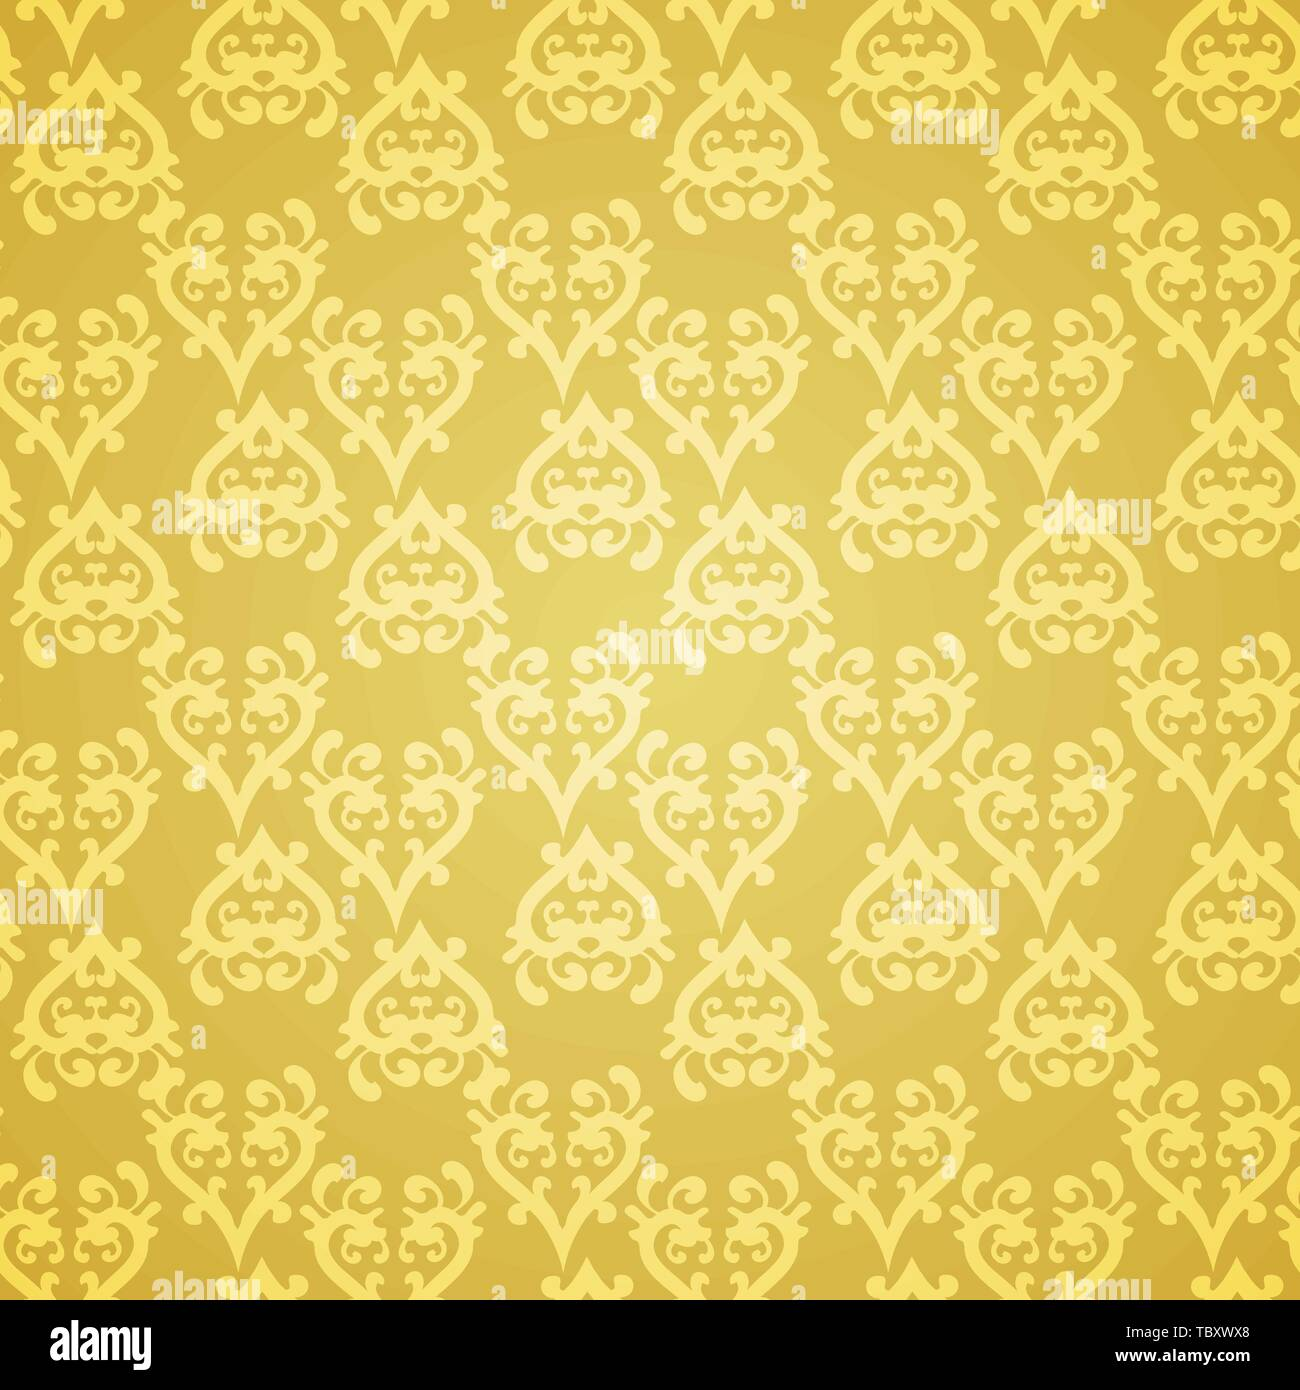 Luxury style background. Vector illustration for bussiness design - Stock Vector